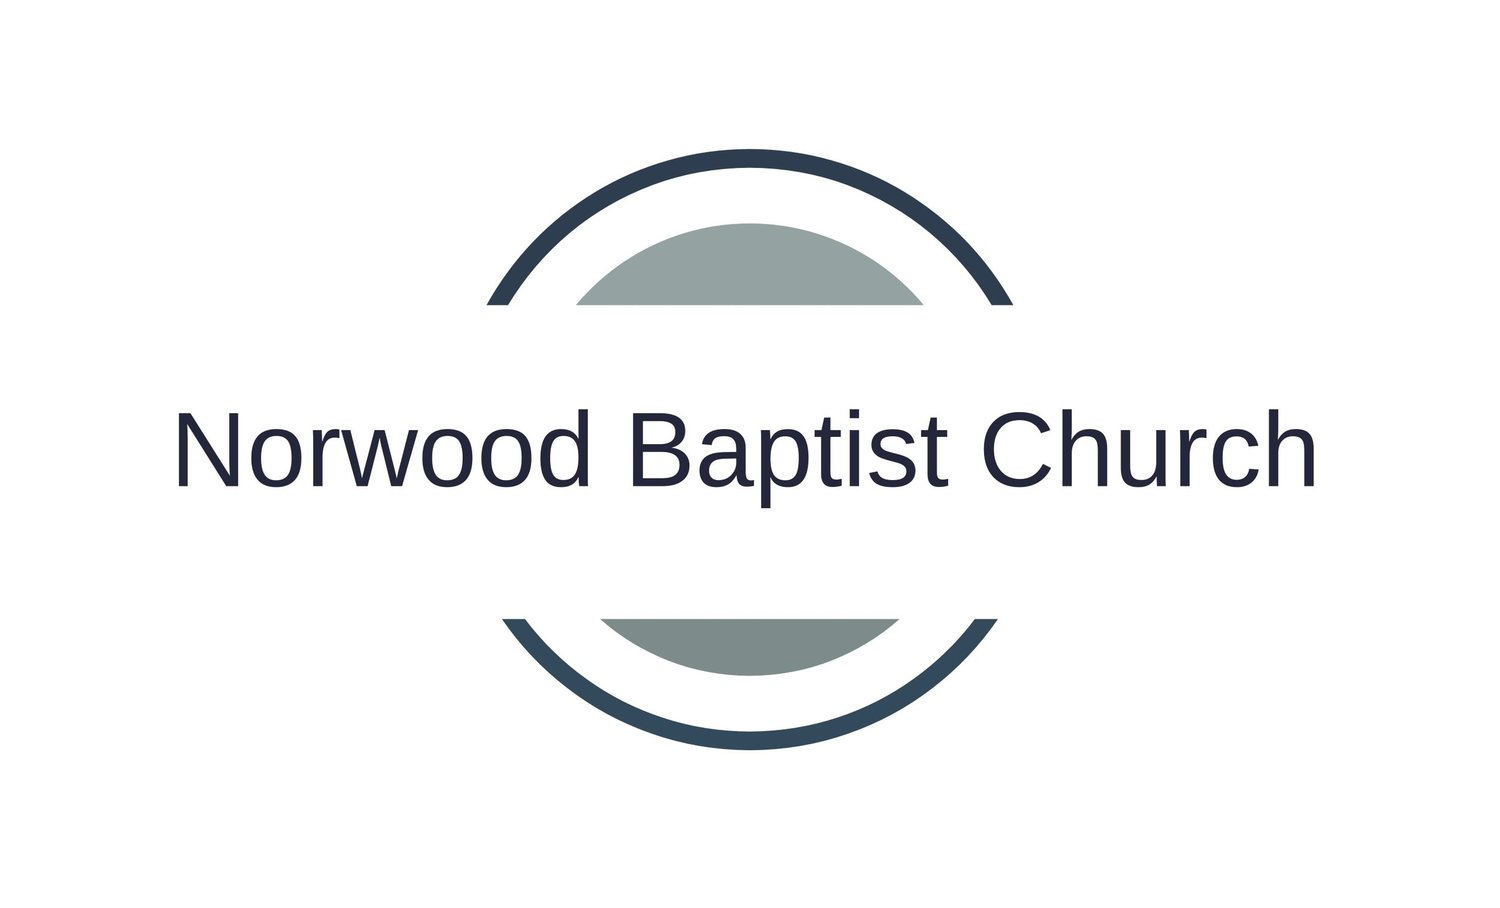 Norwood Baptist Church